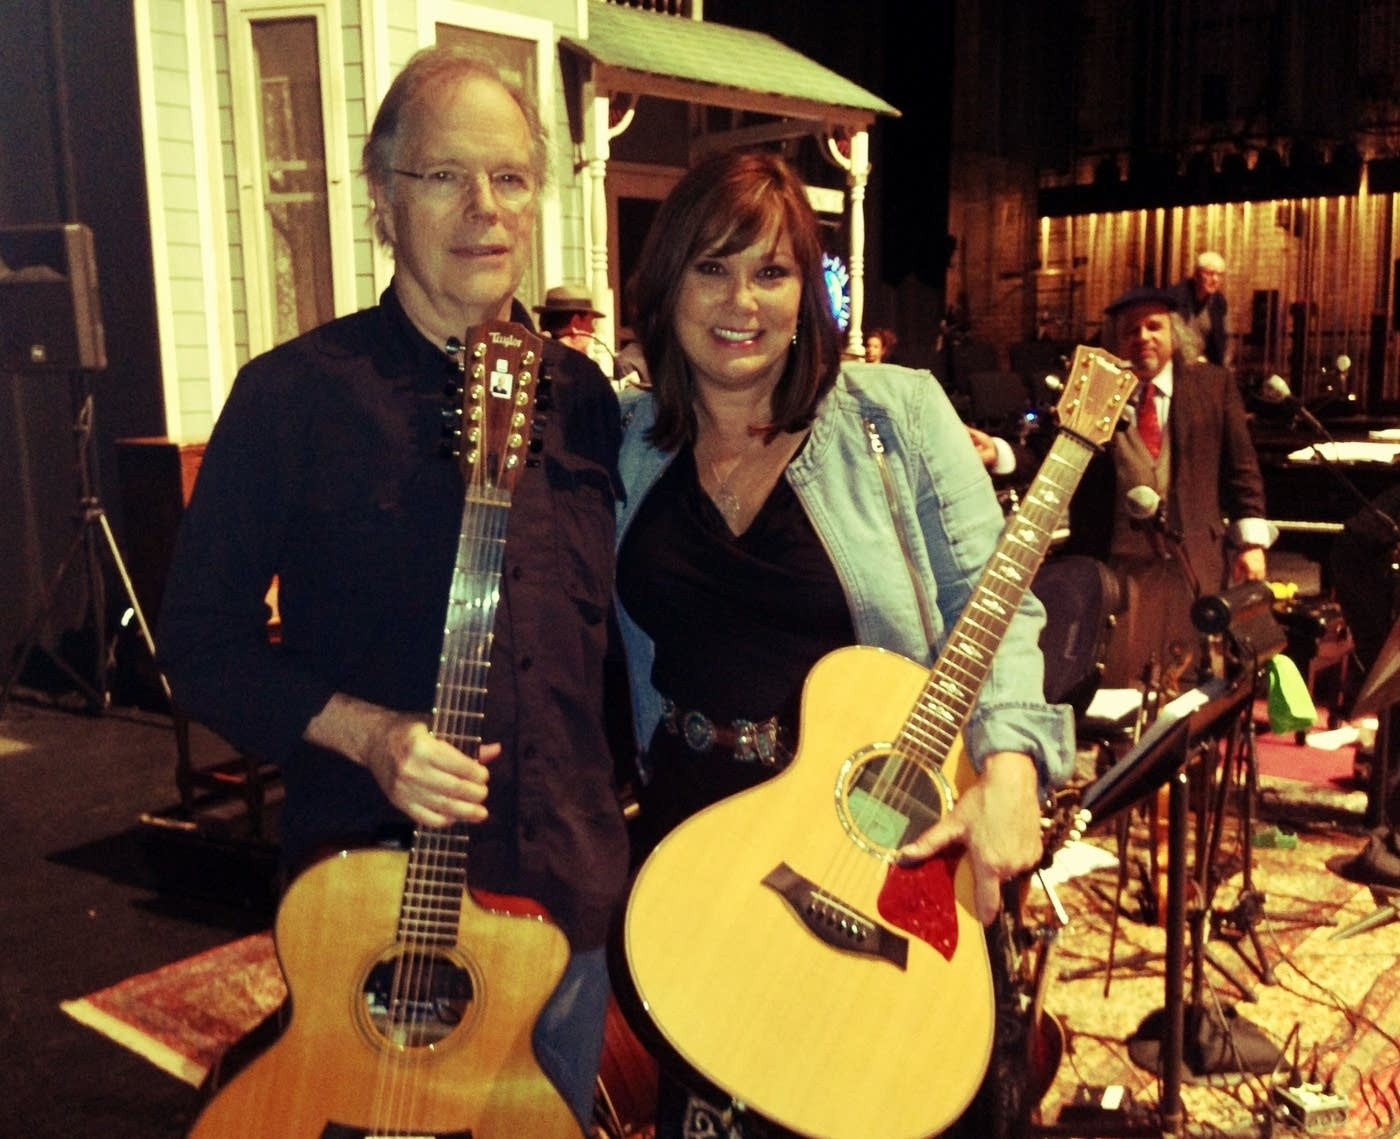 Leo Kottke and Suzy Bogguss